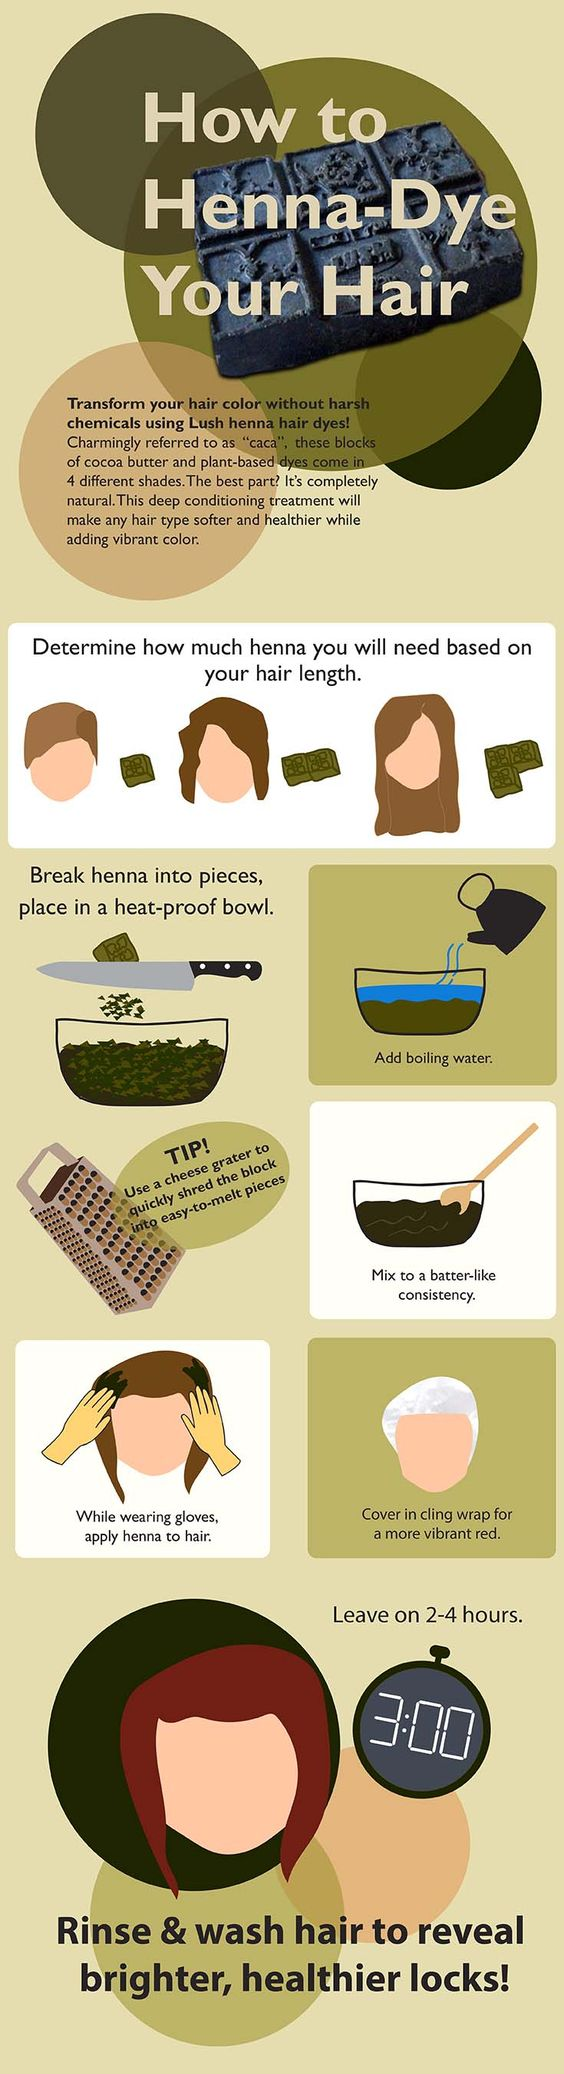 Hair | Tipsögraphic | More hair tips at http://www.tipsographic.com/